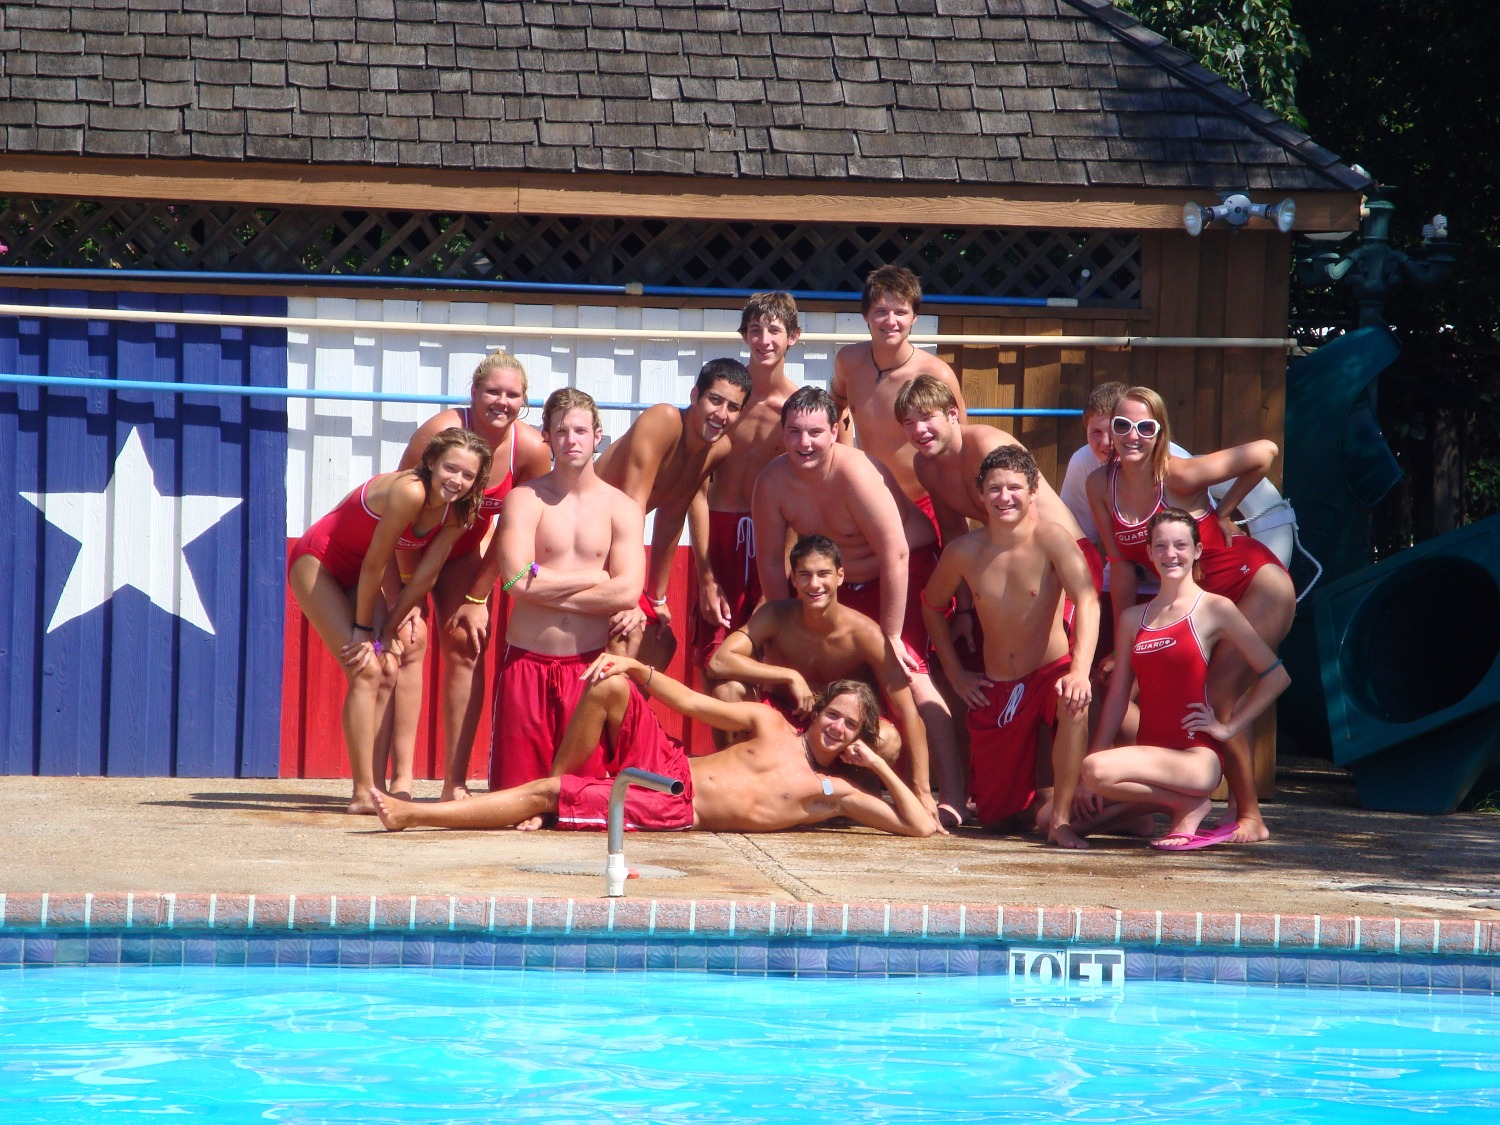 Texas Pool Baywatch Lifeguard Team